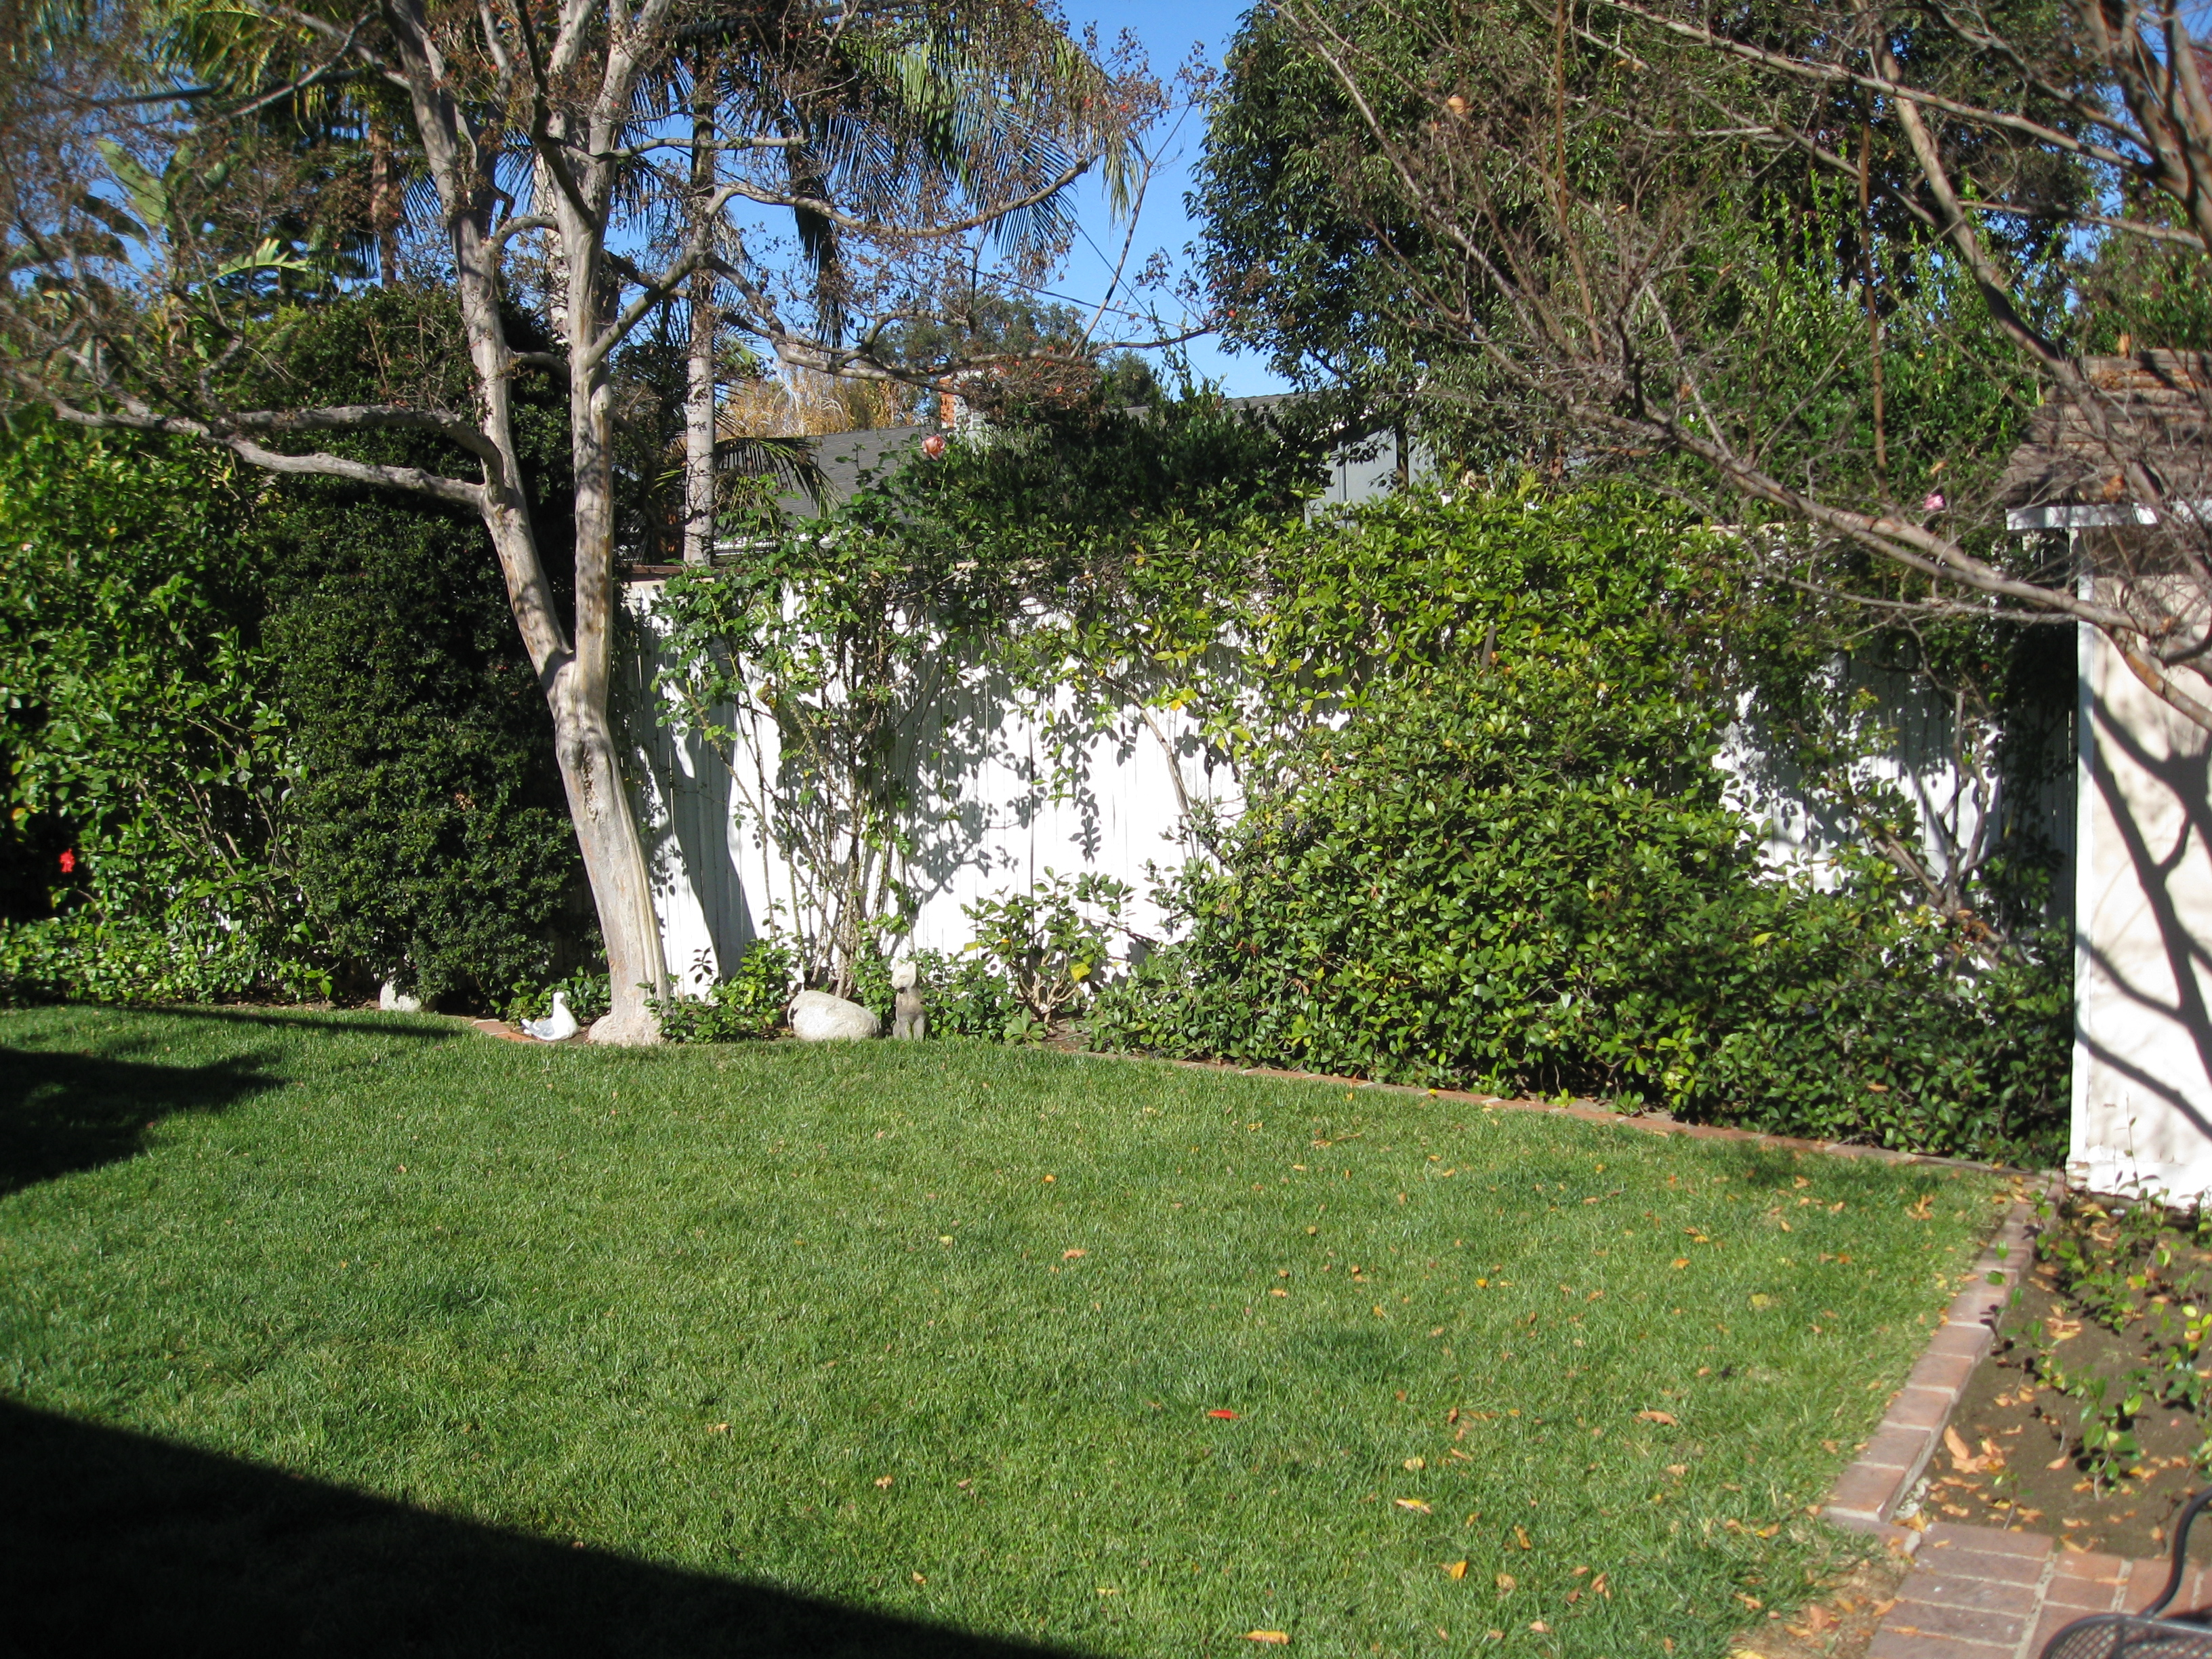 Grass and foliage take up the sunniest spot in the garden.